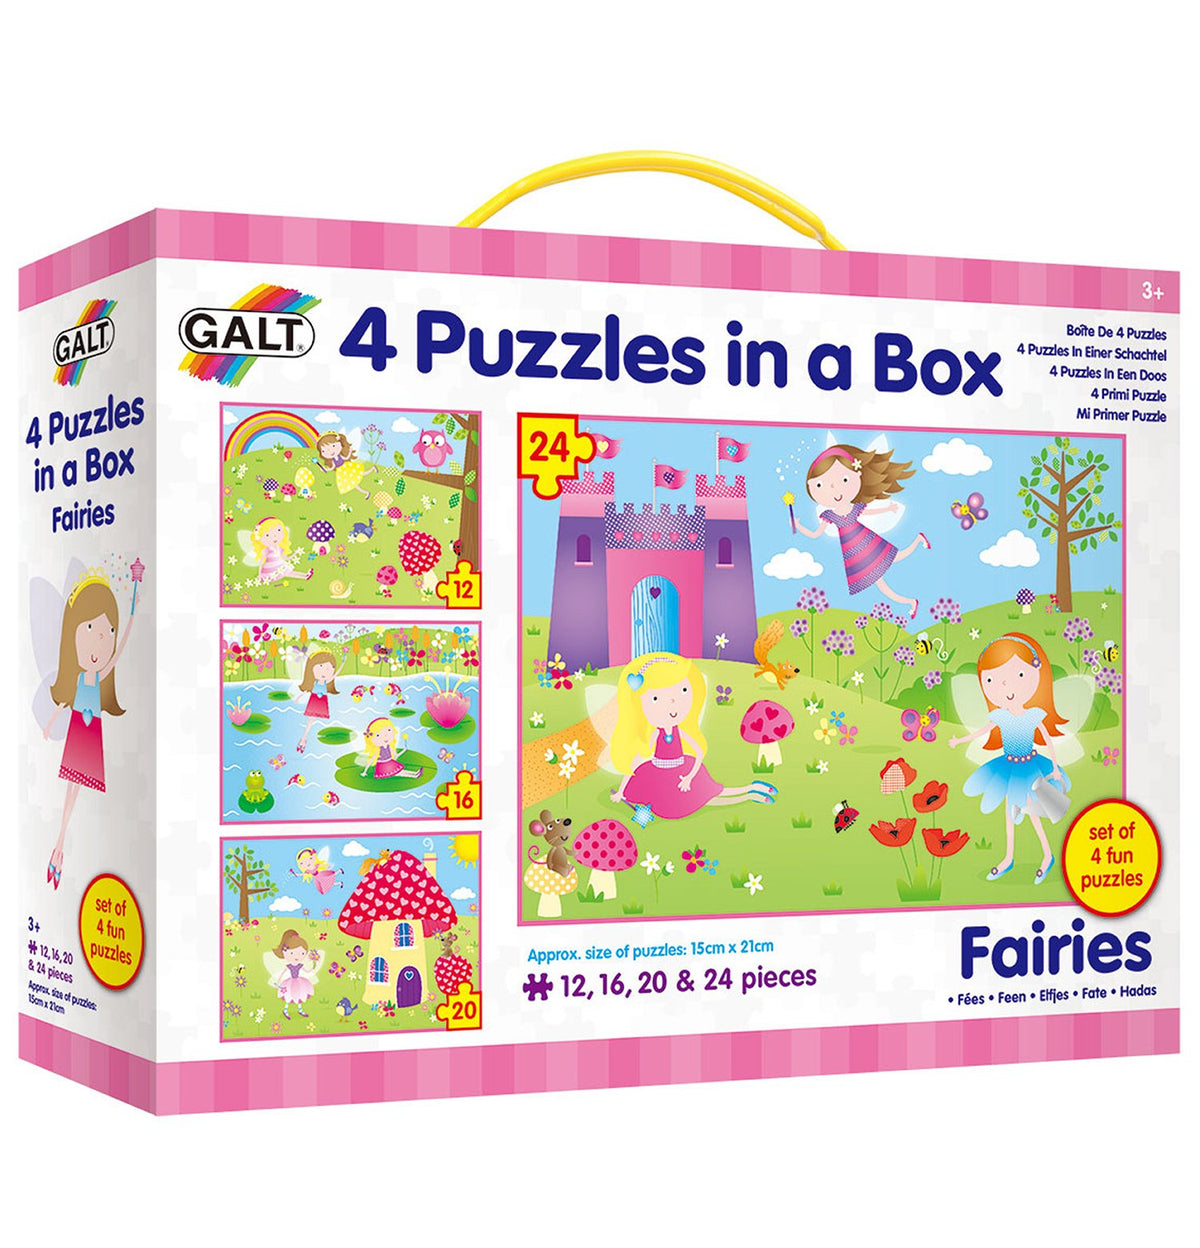 4 Puzzles in a Box - Galt